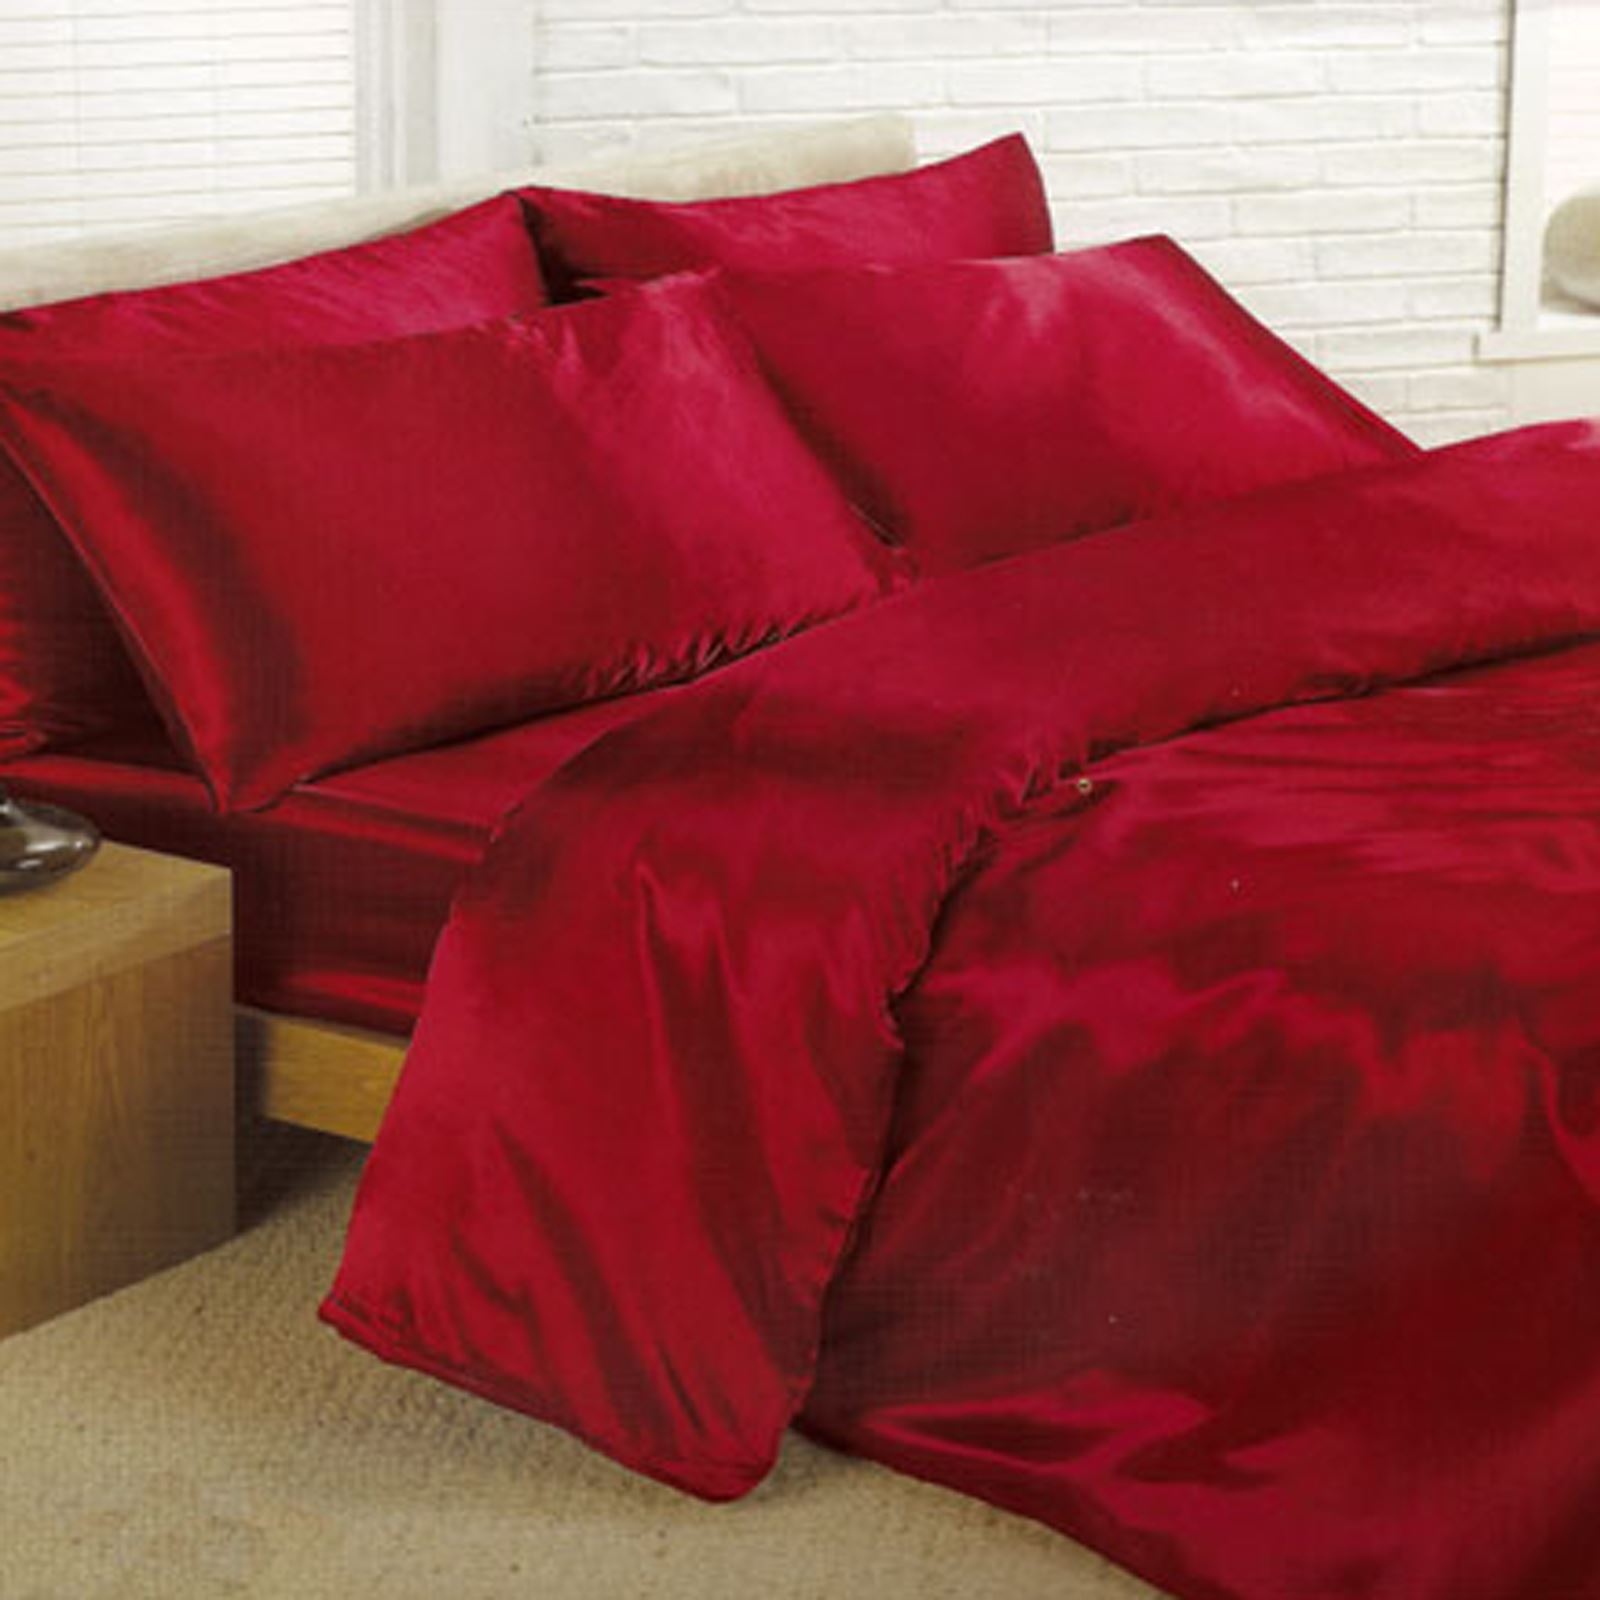 Satin bedding sets 6 piece set duvet cover fitted How to put a fitted sheet on a bed